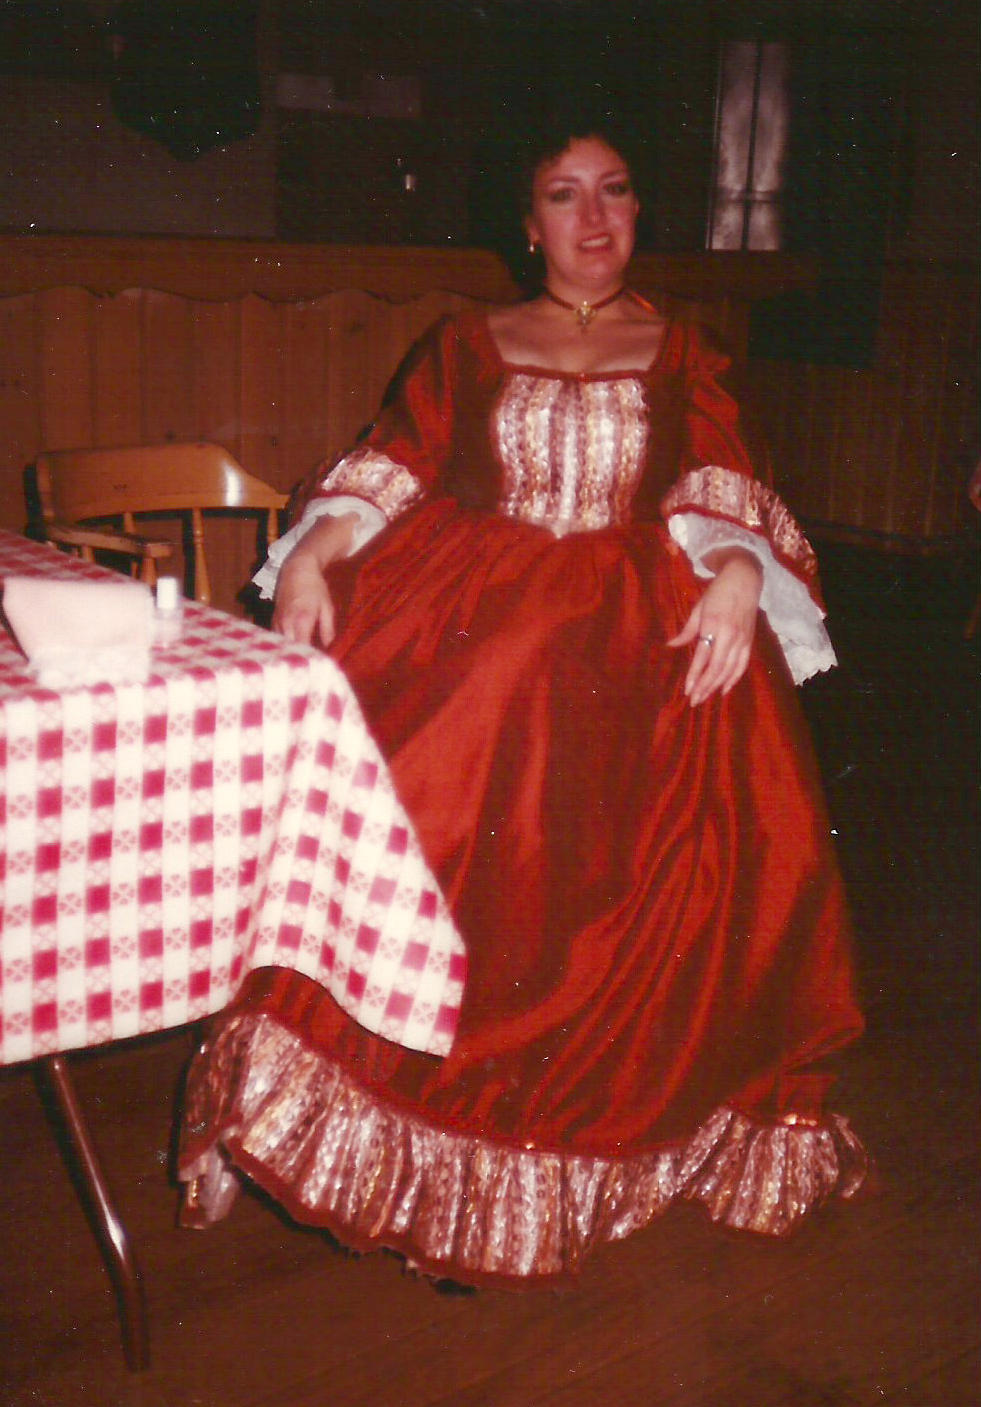 Liederkranz Studio Opera, Der Rosenkavalier, New York City, 1986 – Janice as Annina